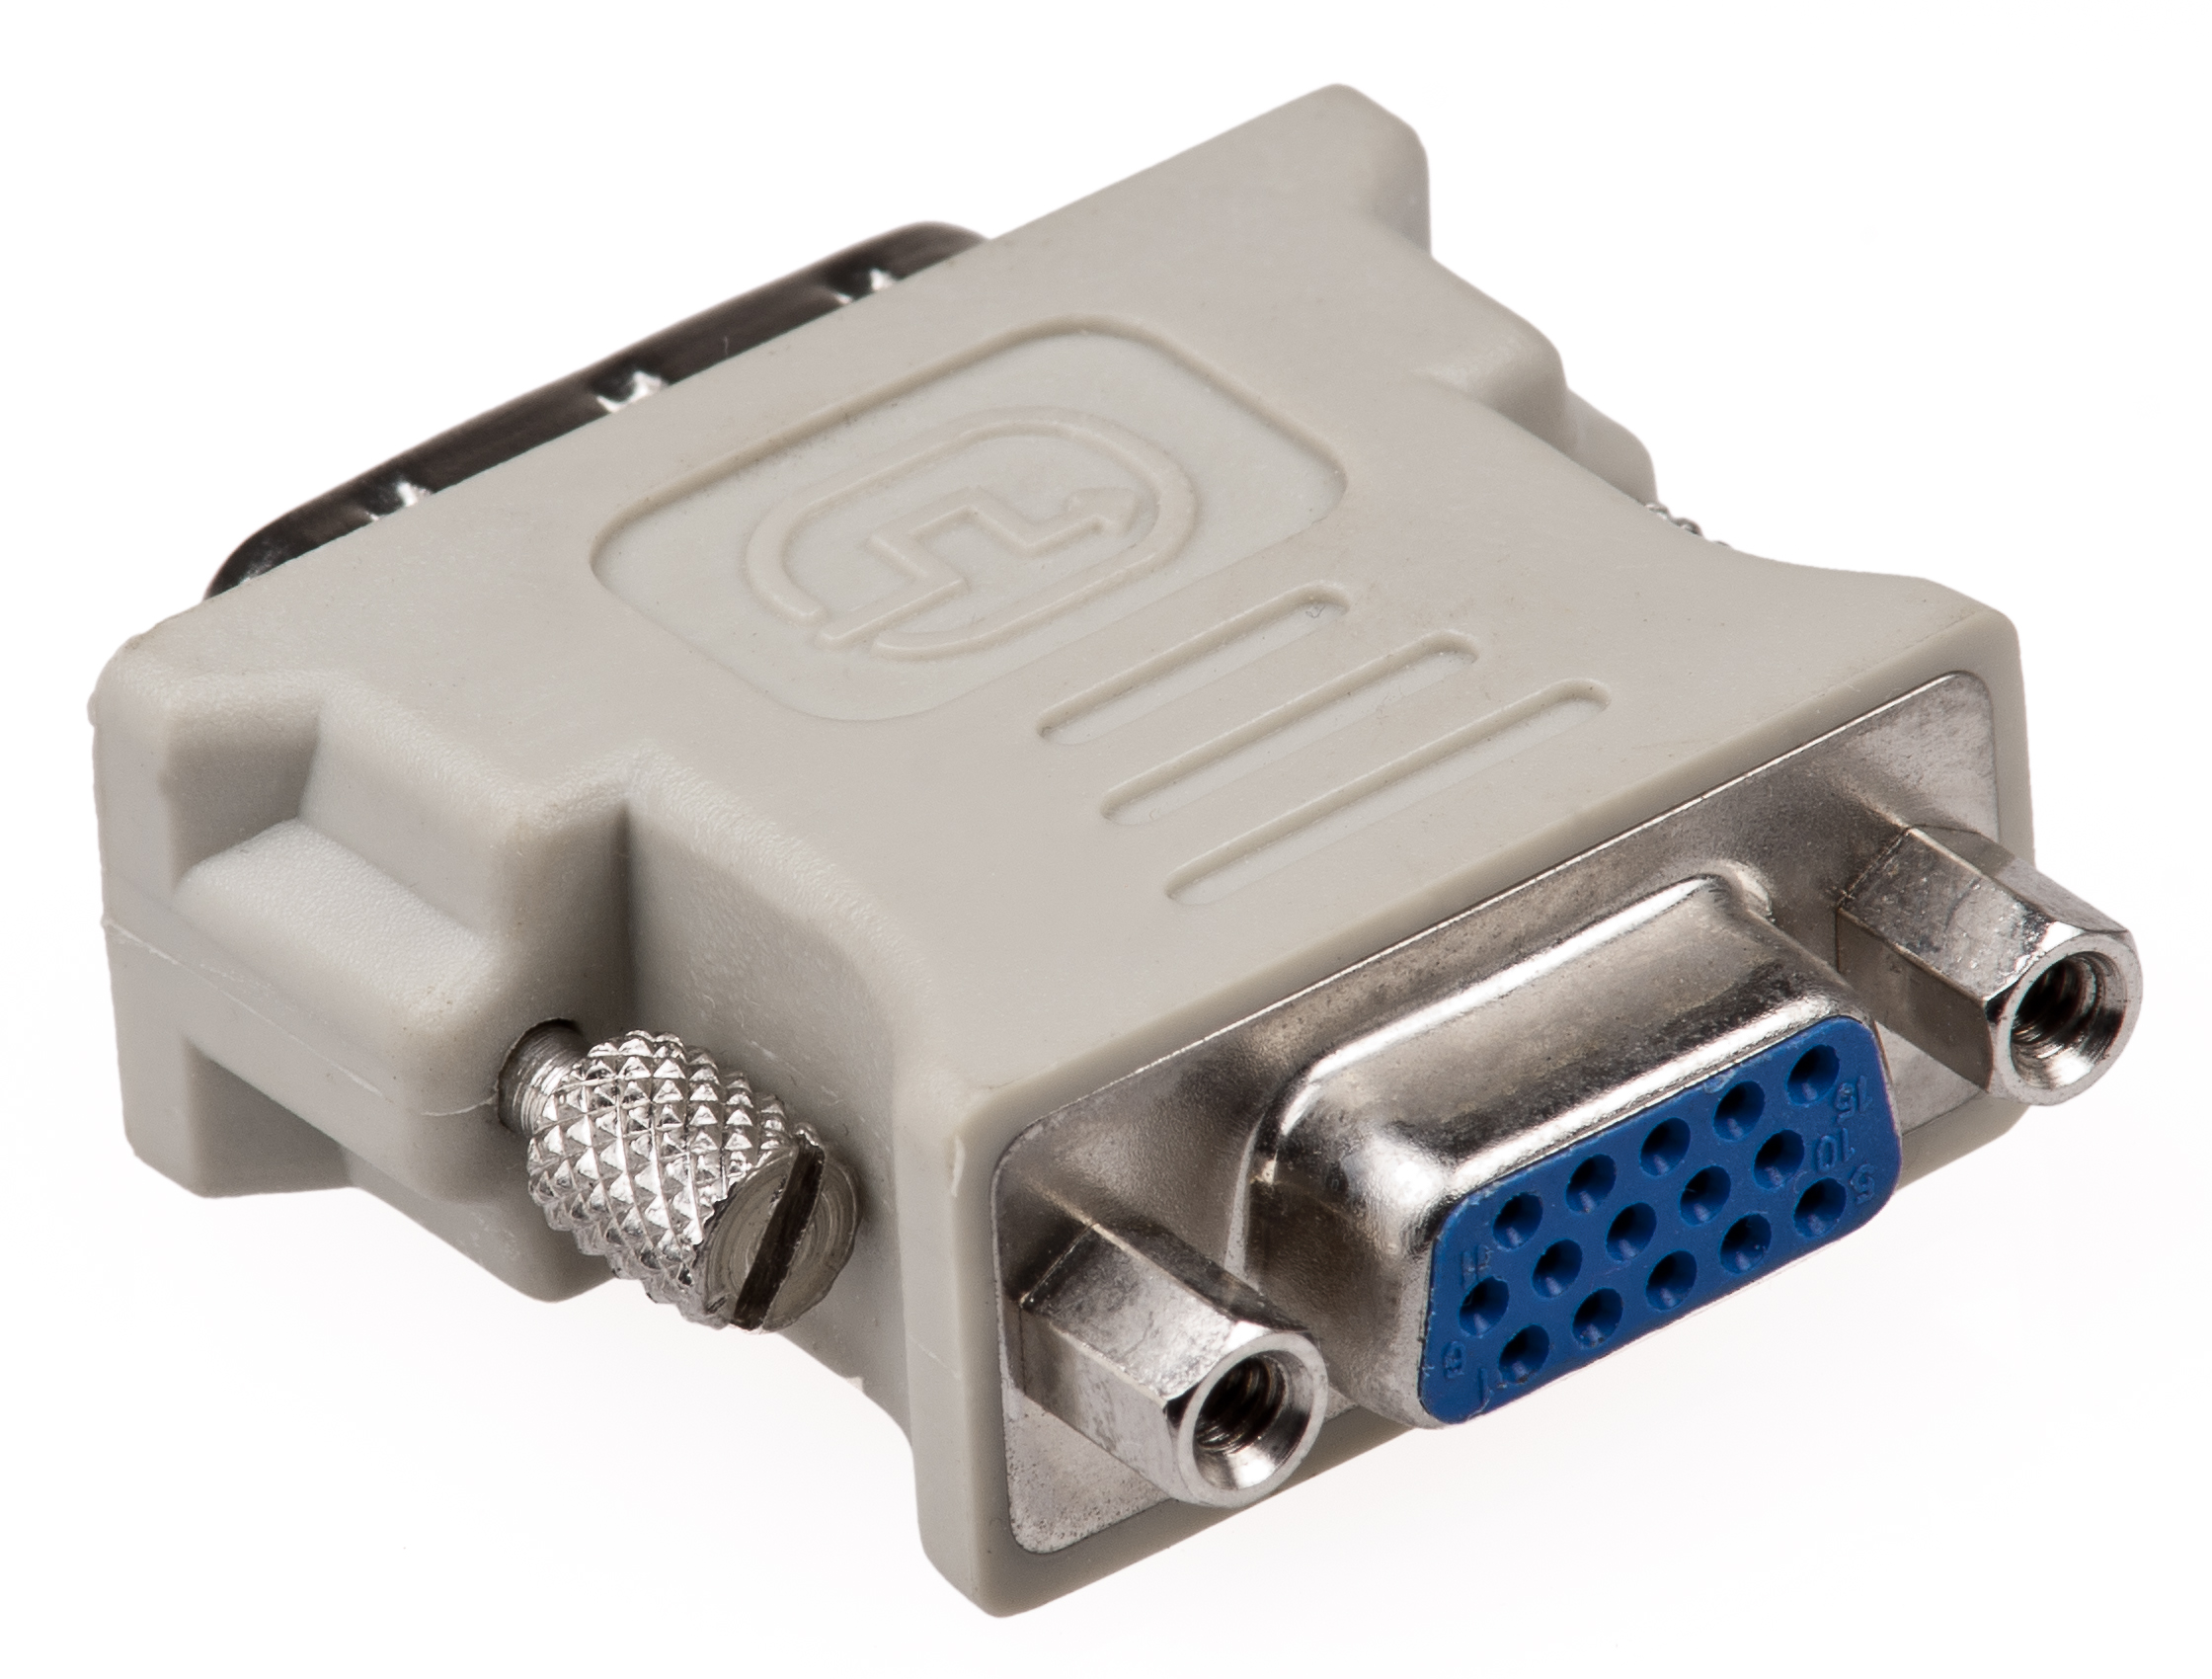 HF-DVI-VGA-MF: DVI to VGA adapter M/F (24+1)